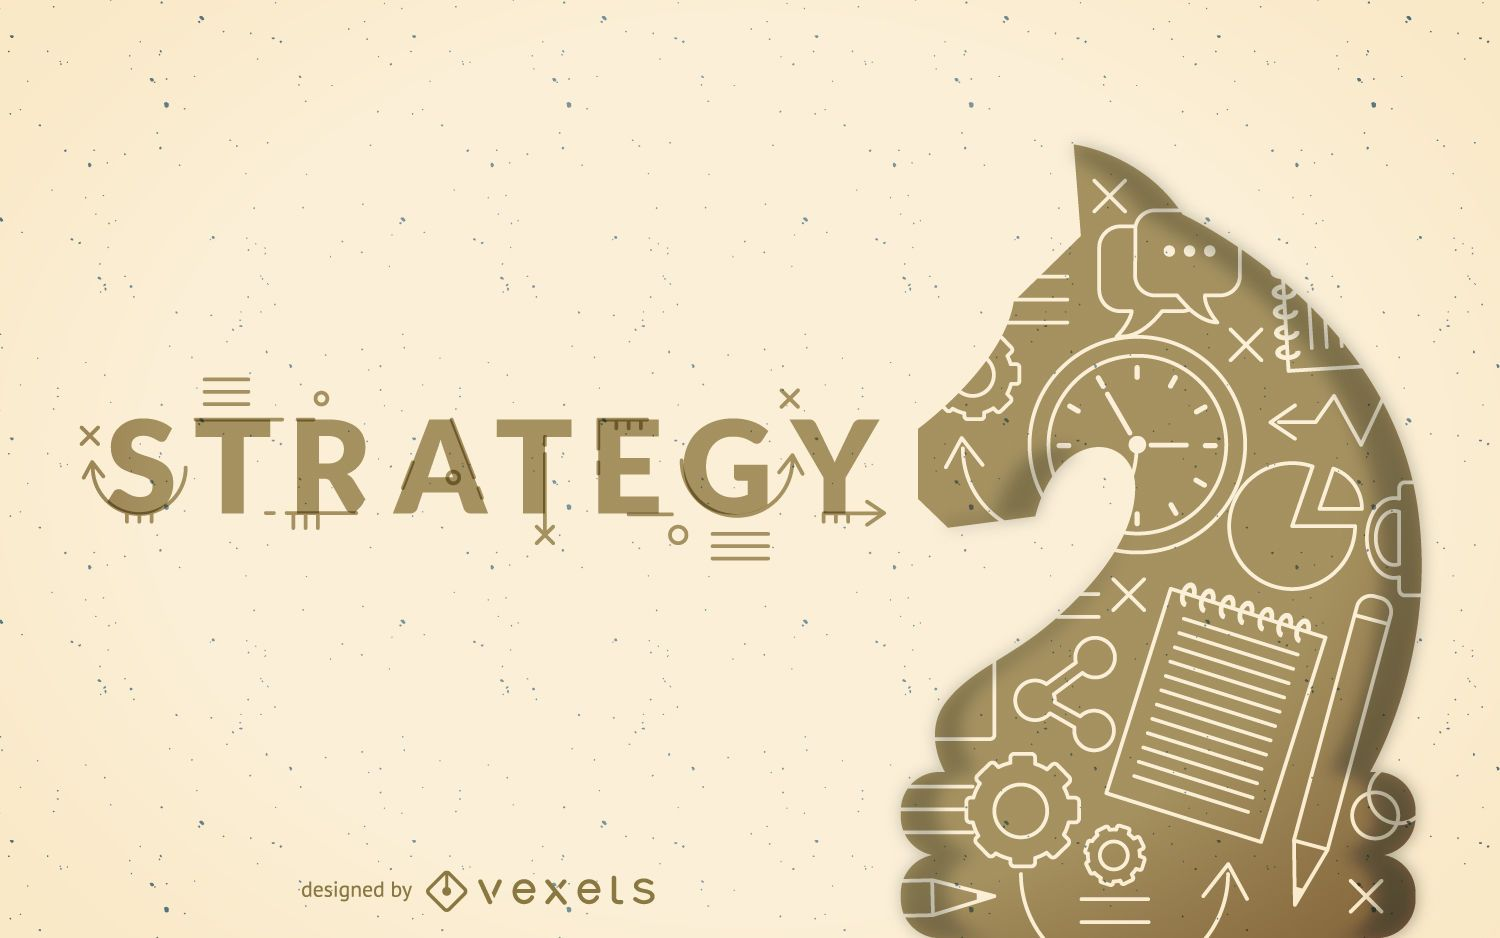 Strategy concept illustration